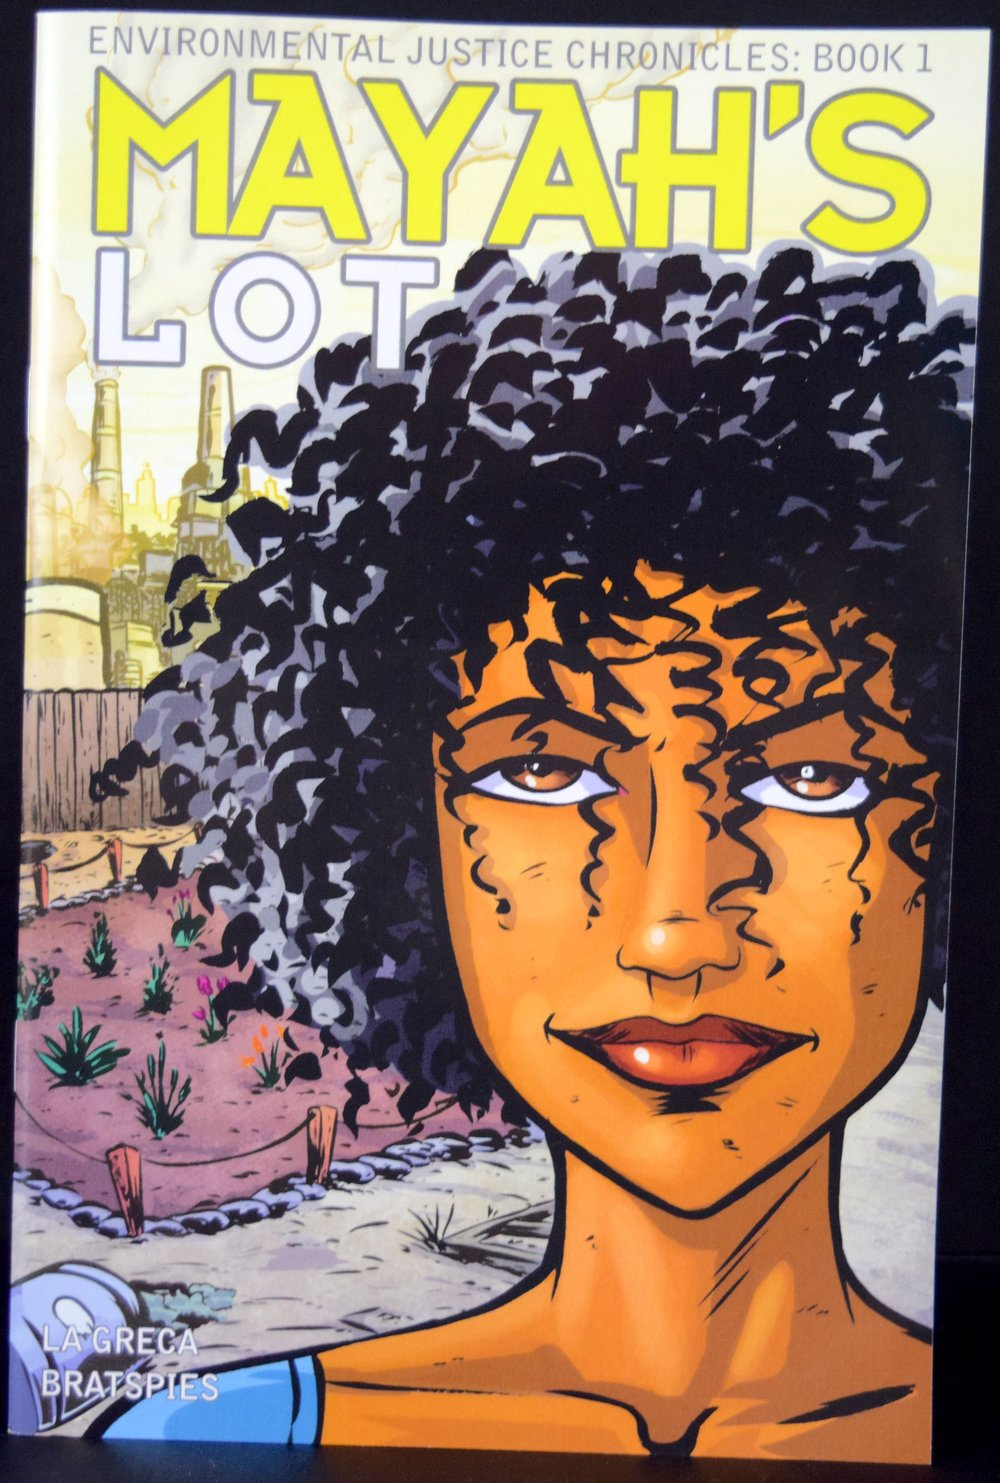 Environmental Justice Chronicles Book 1: Mayah's Lot,  written by  Charlie La Greca  &  Rebecca Bratspies  with art from  Charlie La Greca .